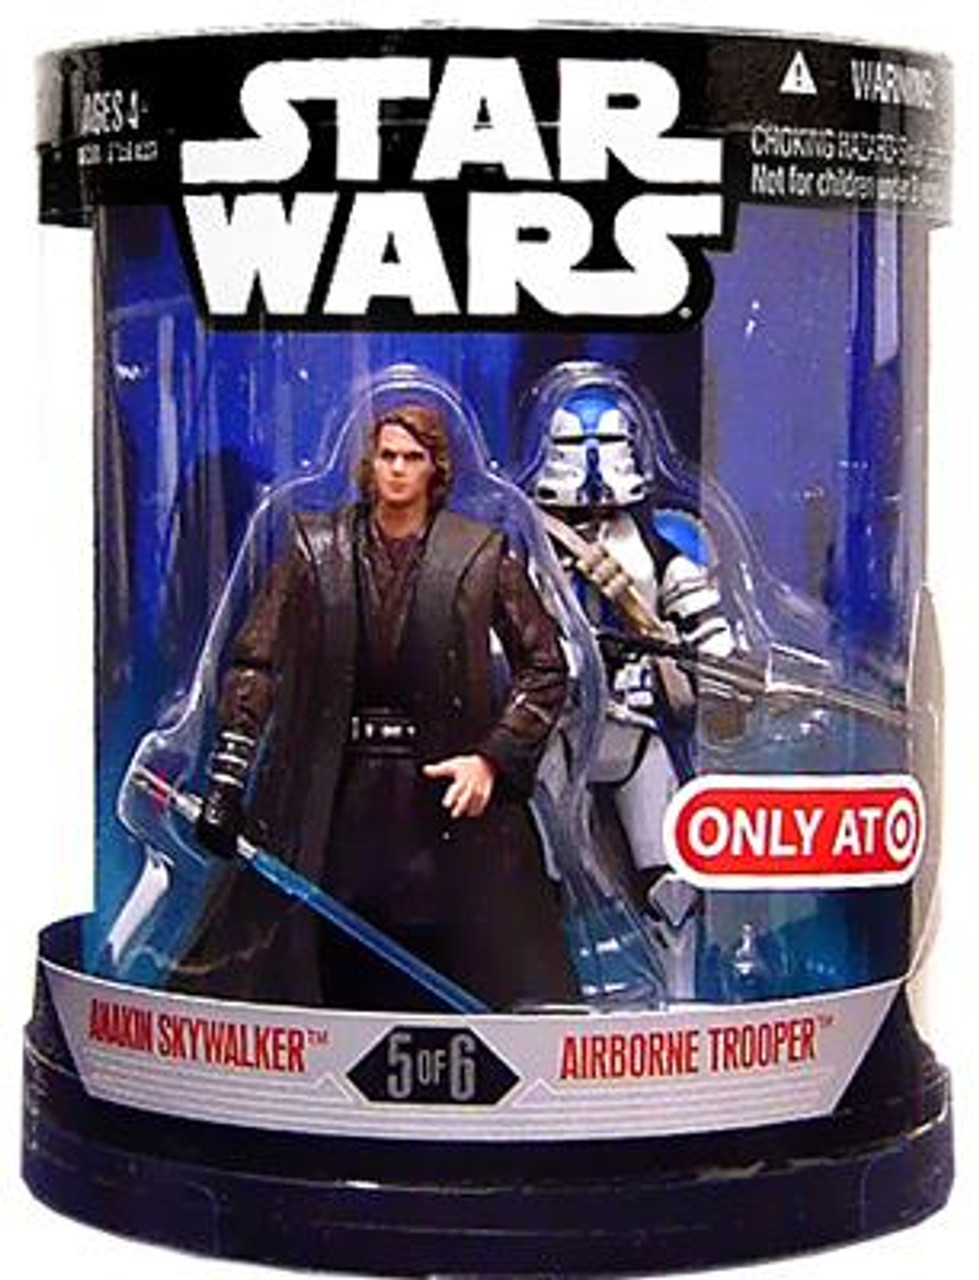 Star Wars Revenge of the Sith Order 66 2007 Anakin Skywalker & Airborne Trooper Exclusive Action Figure 2-Pack #5 of 6